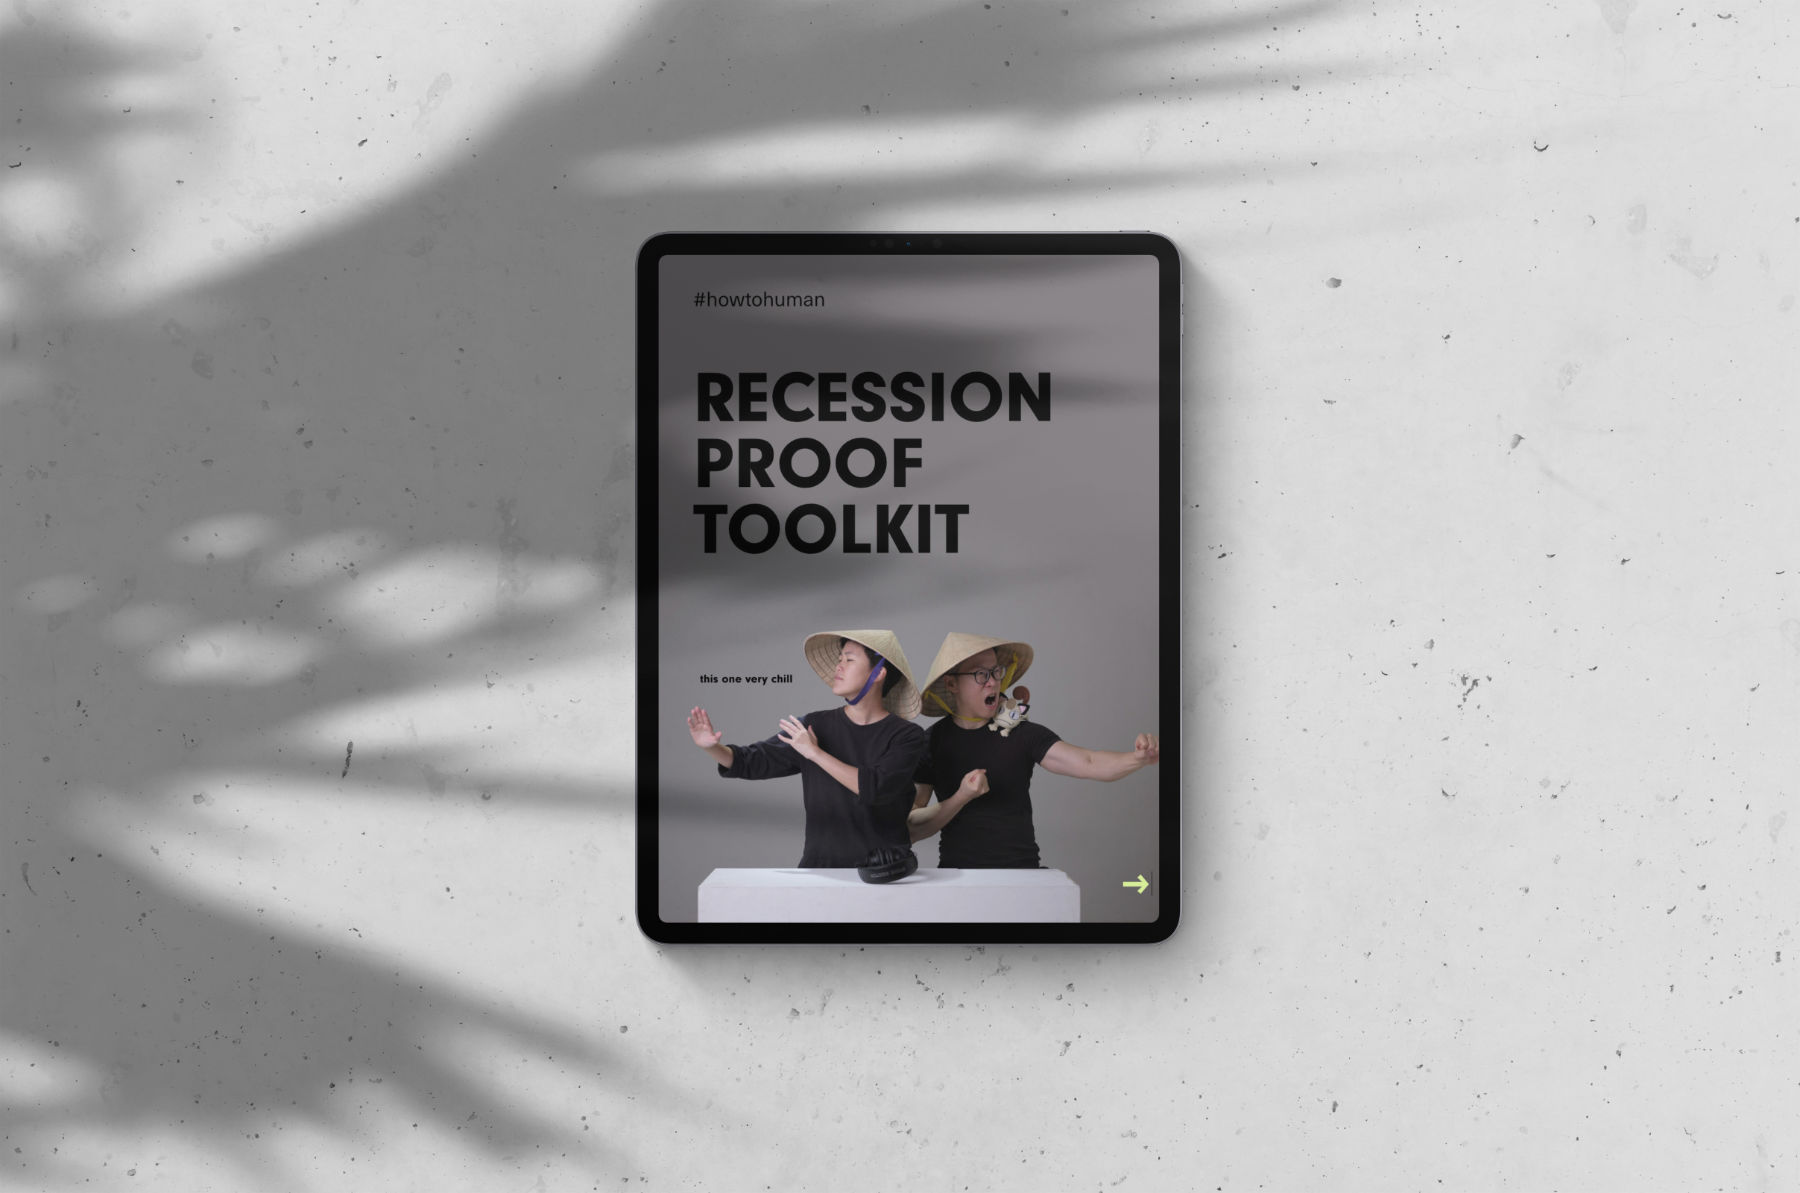 recession-proof-toolkit-header